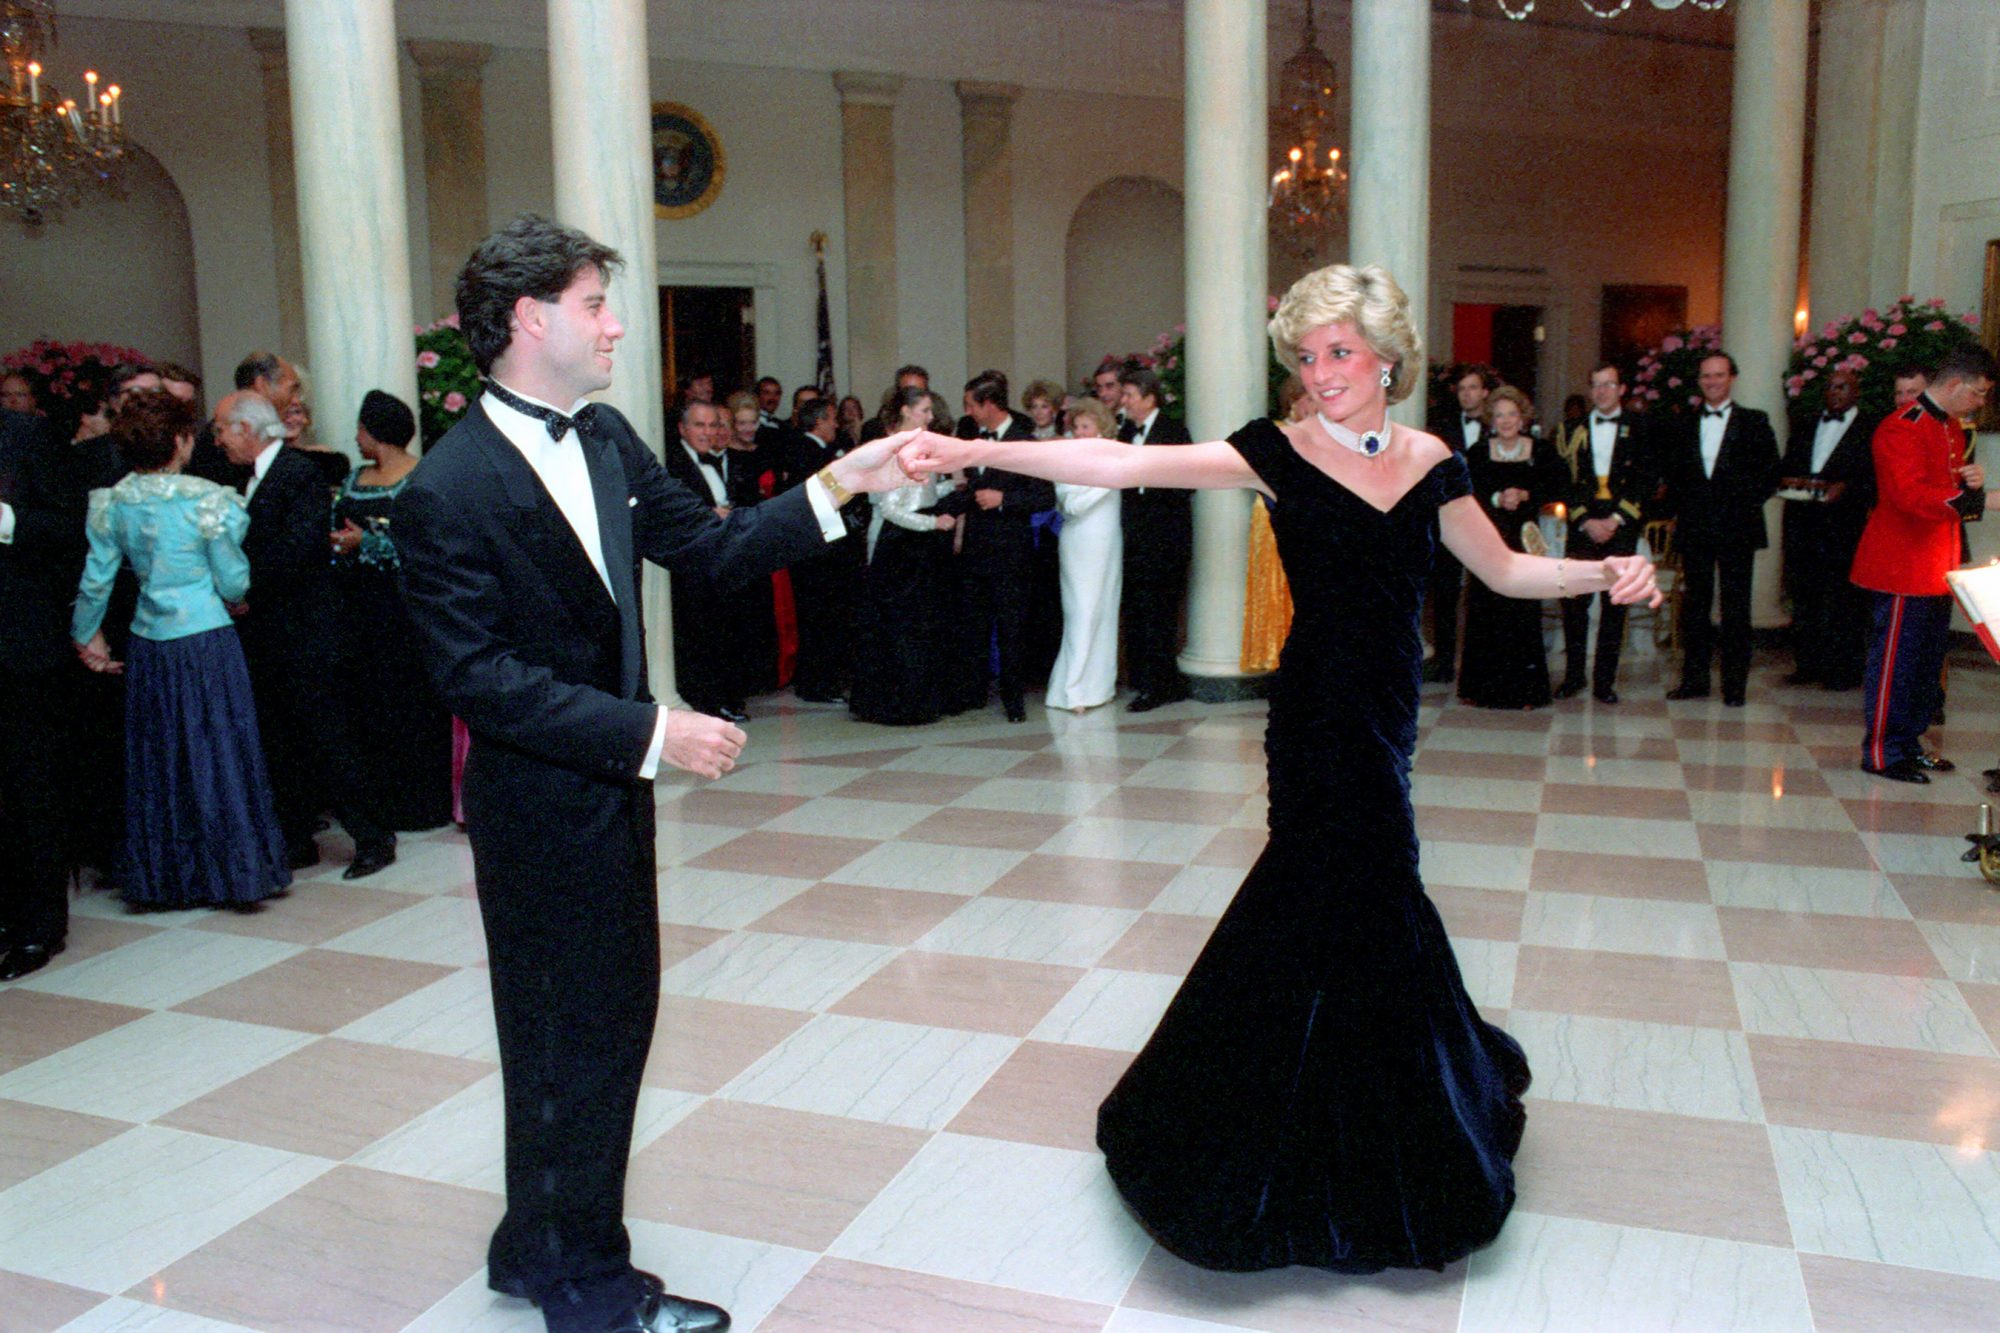 Formal Dinner for Prince Charles and Princess Diana